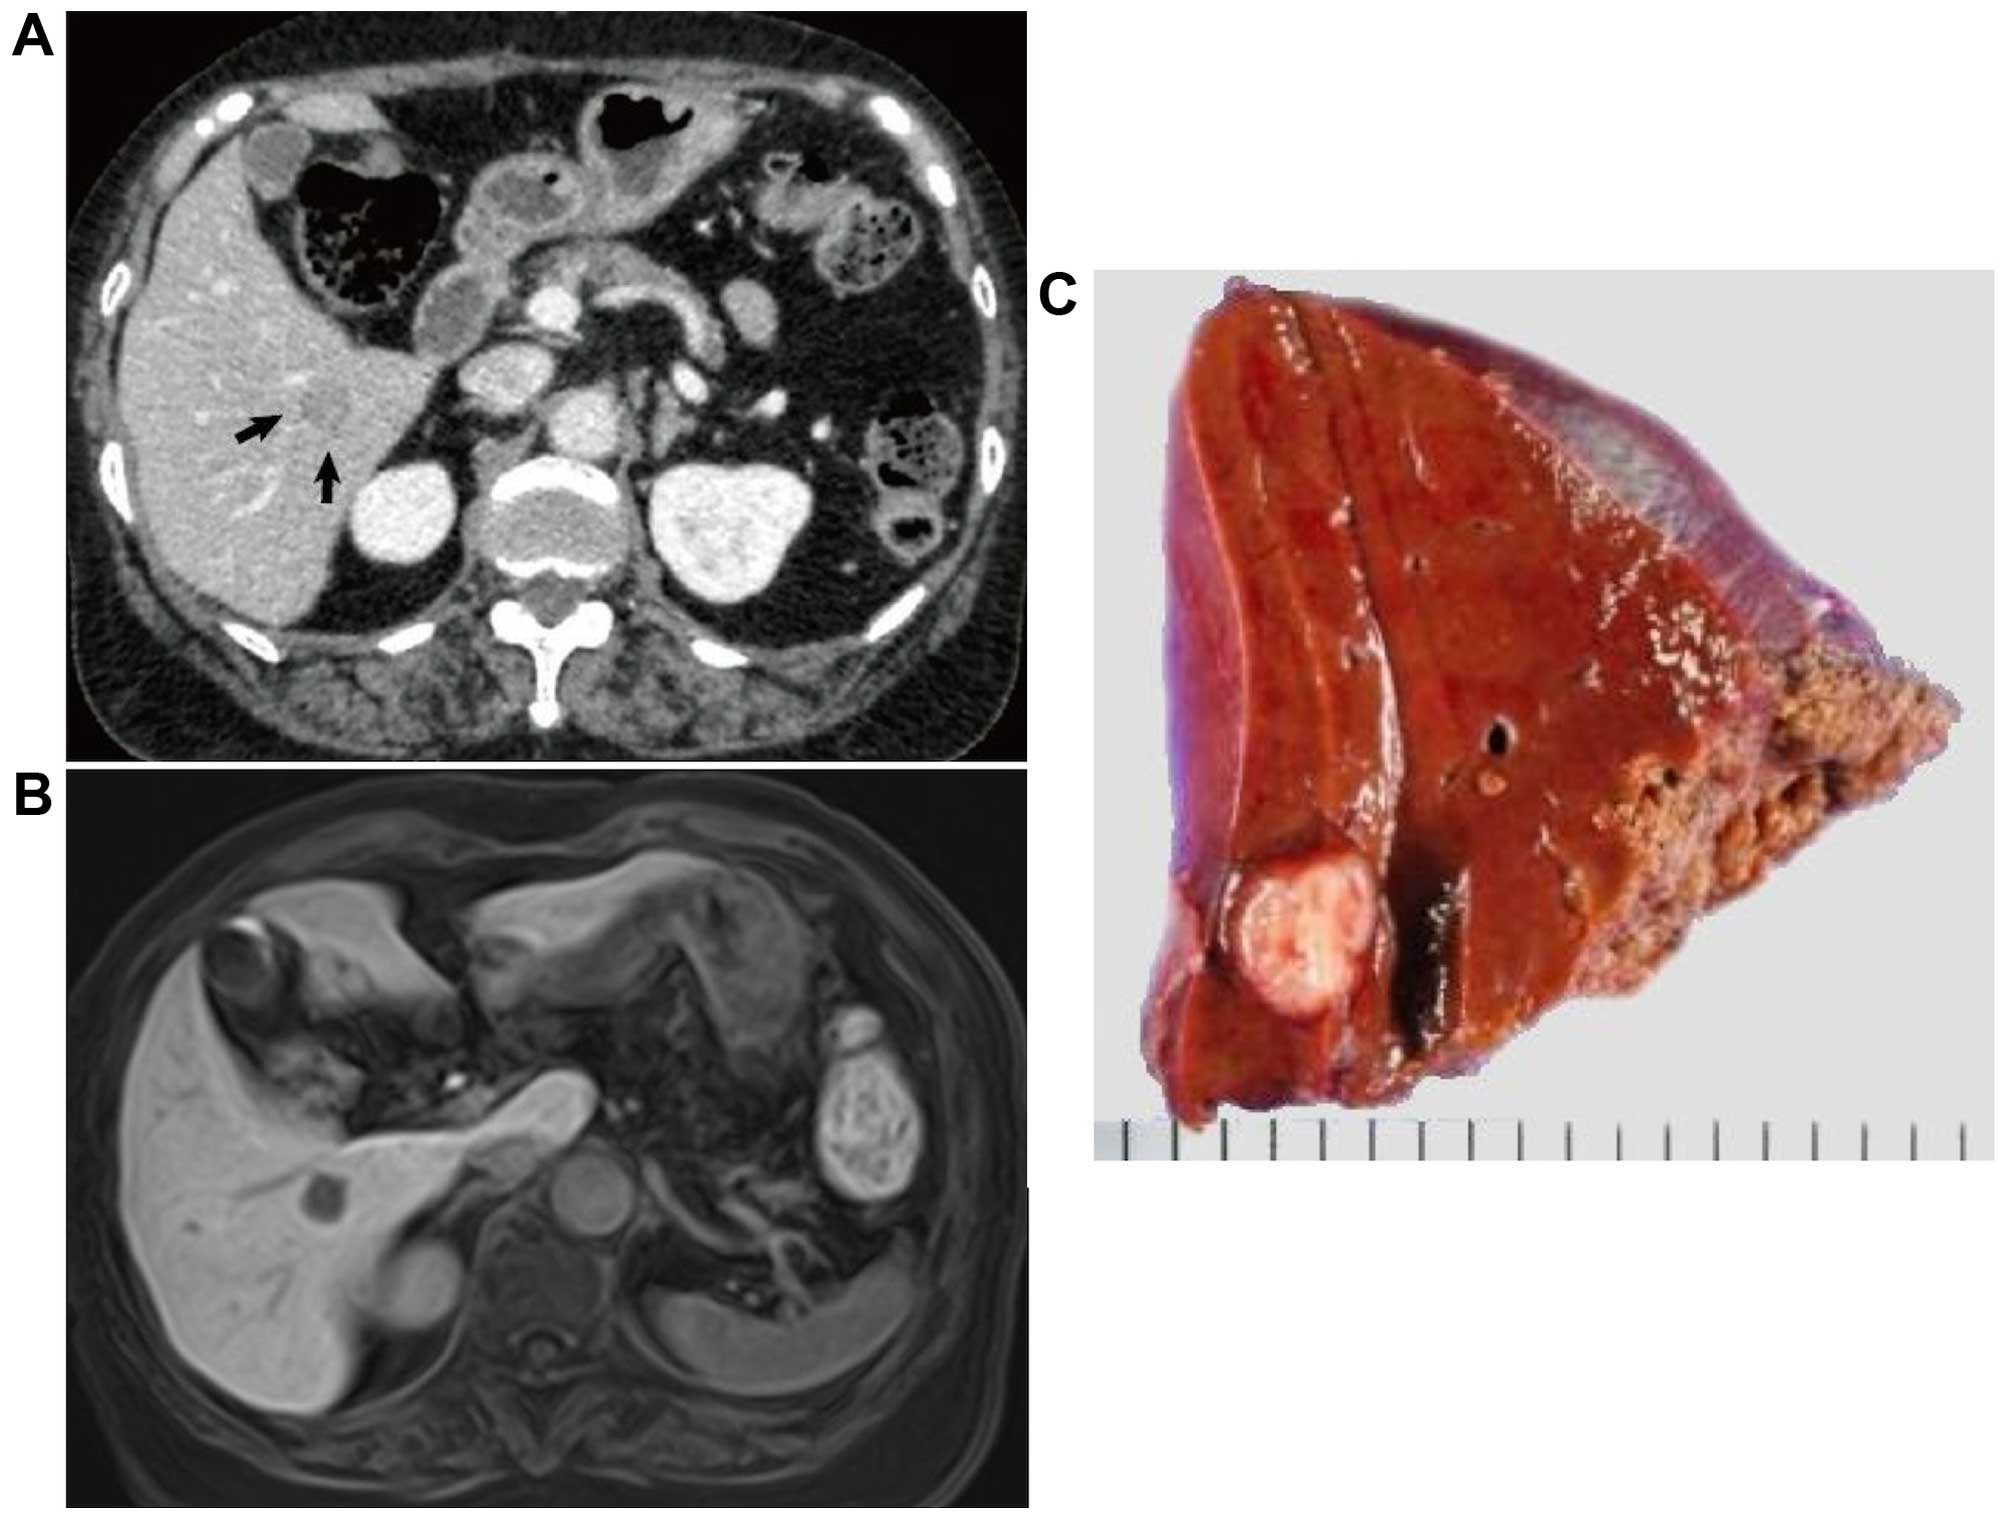 A Abdominal Computed Tomography Revealed A 15 Mm Tumor At Segment Vi In The Liver Arrows B The Tumor Was Detected As A Hypointense Lesion On